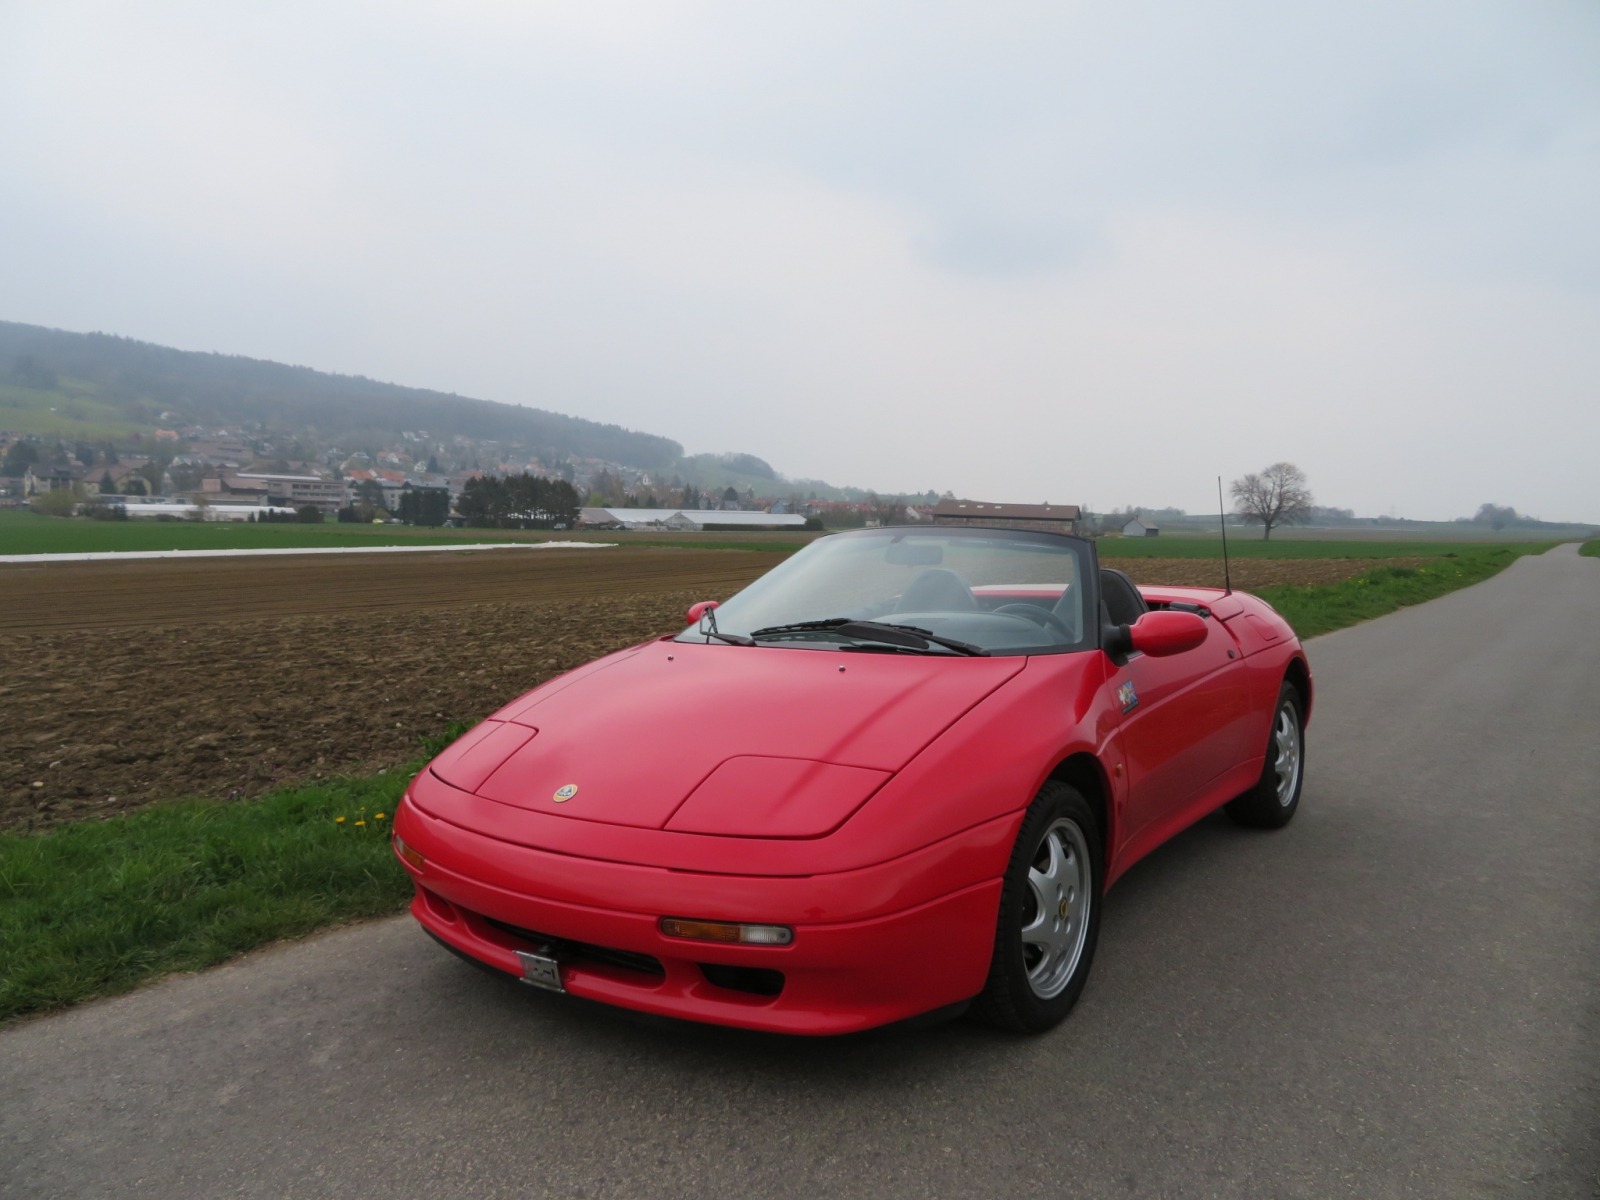 Lotus Elan 1.6 Turbo SE Cabriolet